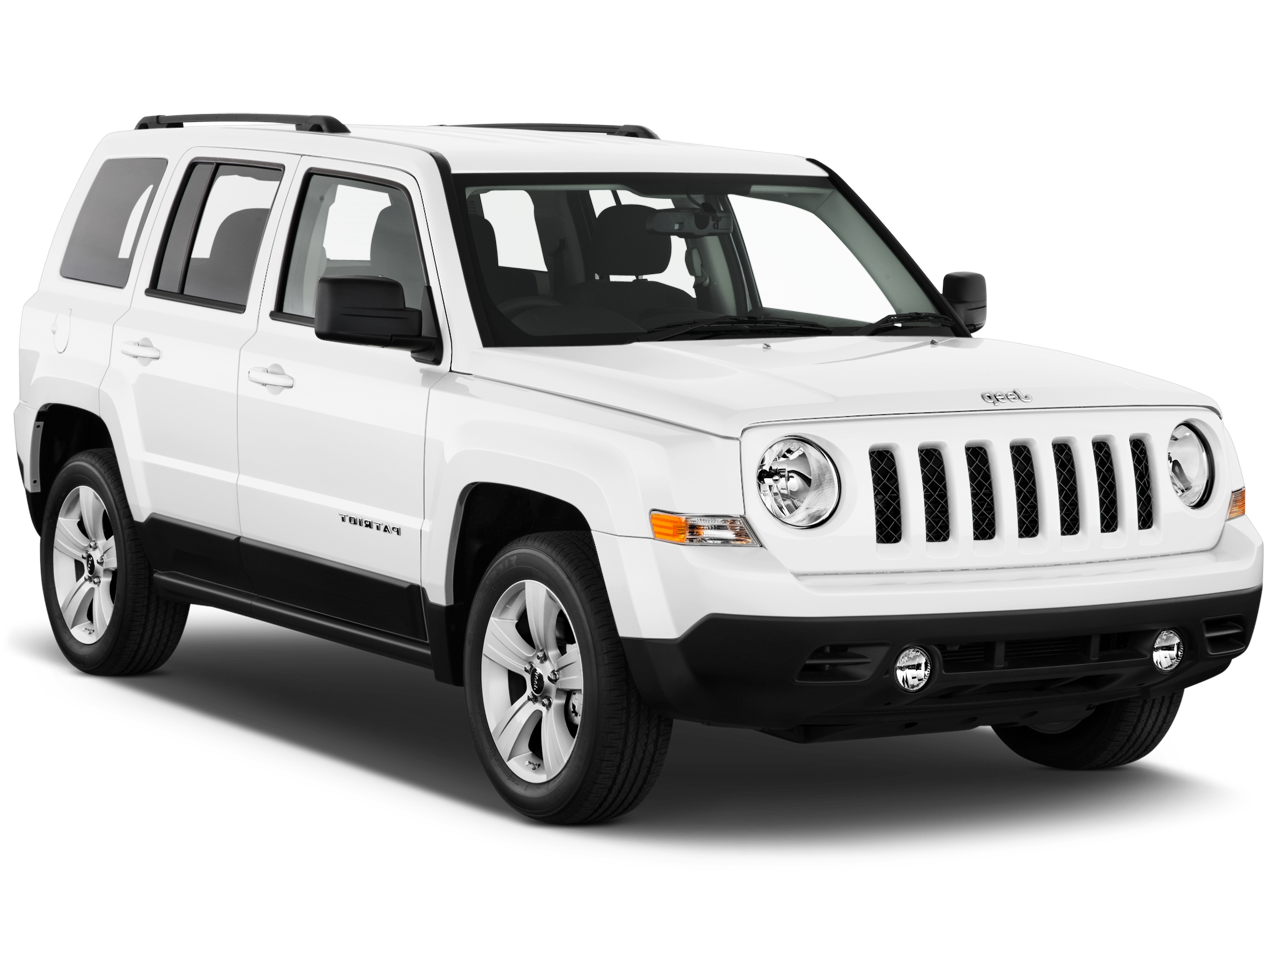 New Jeep Patriot at Quirk Chrysler Jeep